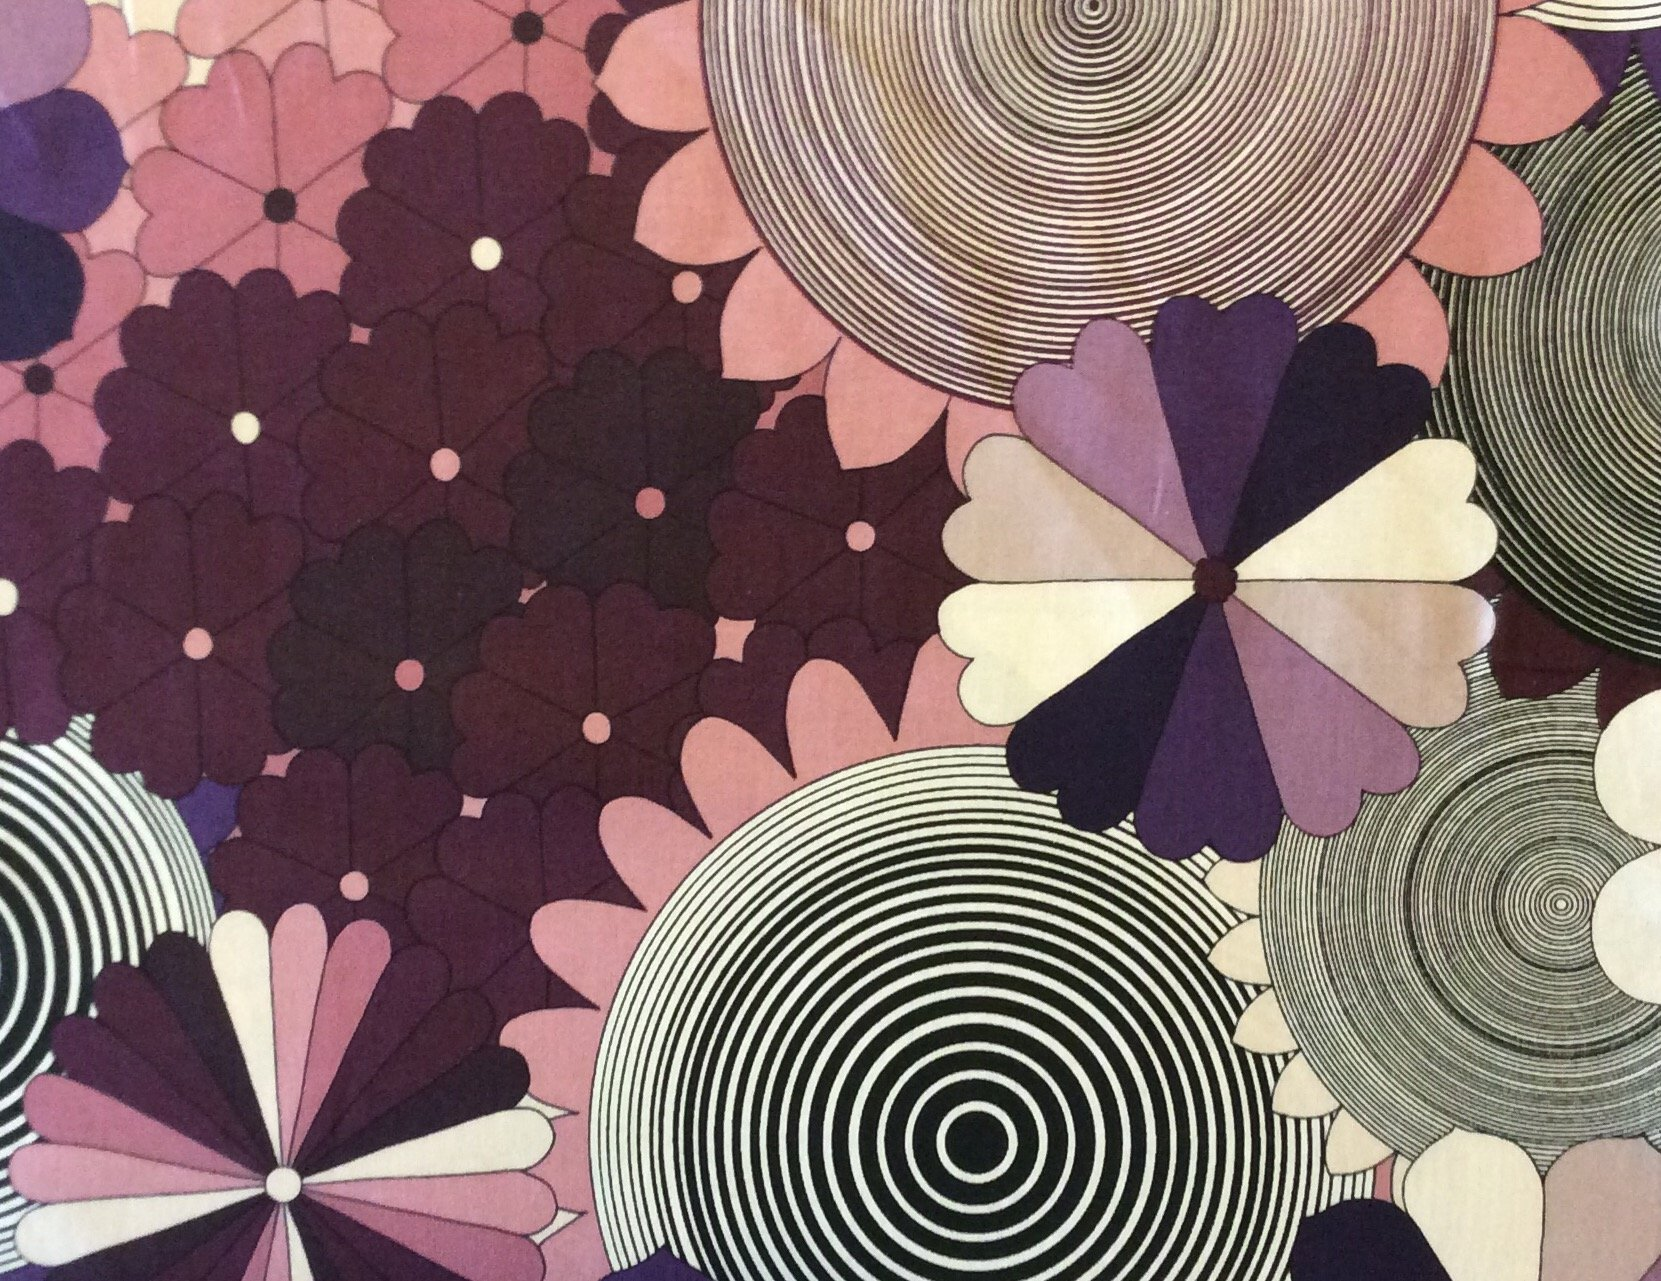 Alexander Henry Groovy Psychedelic Dizzy Hypnotize Circles Floral Illusion Quilting Cotton Fabric AH109